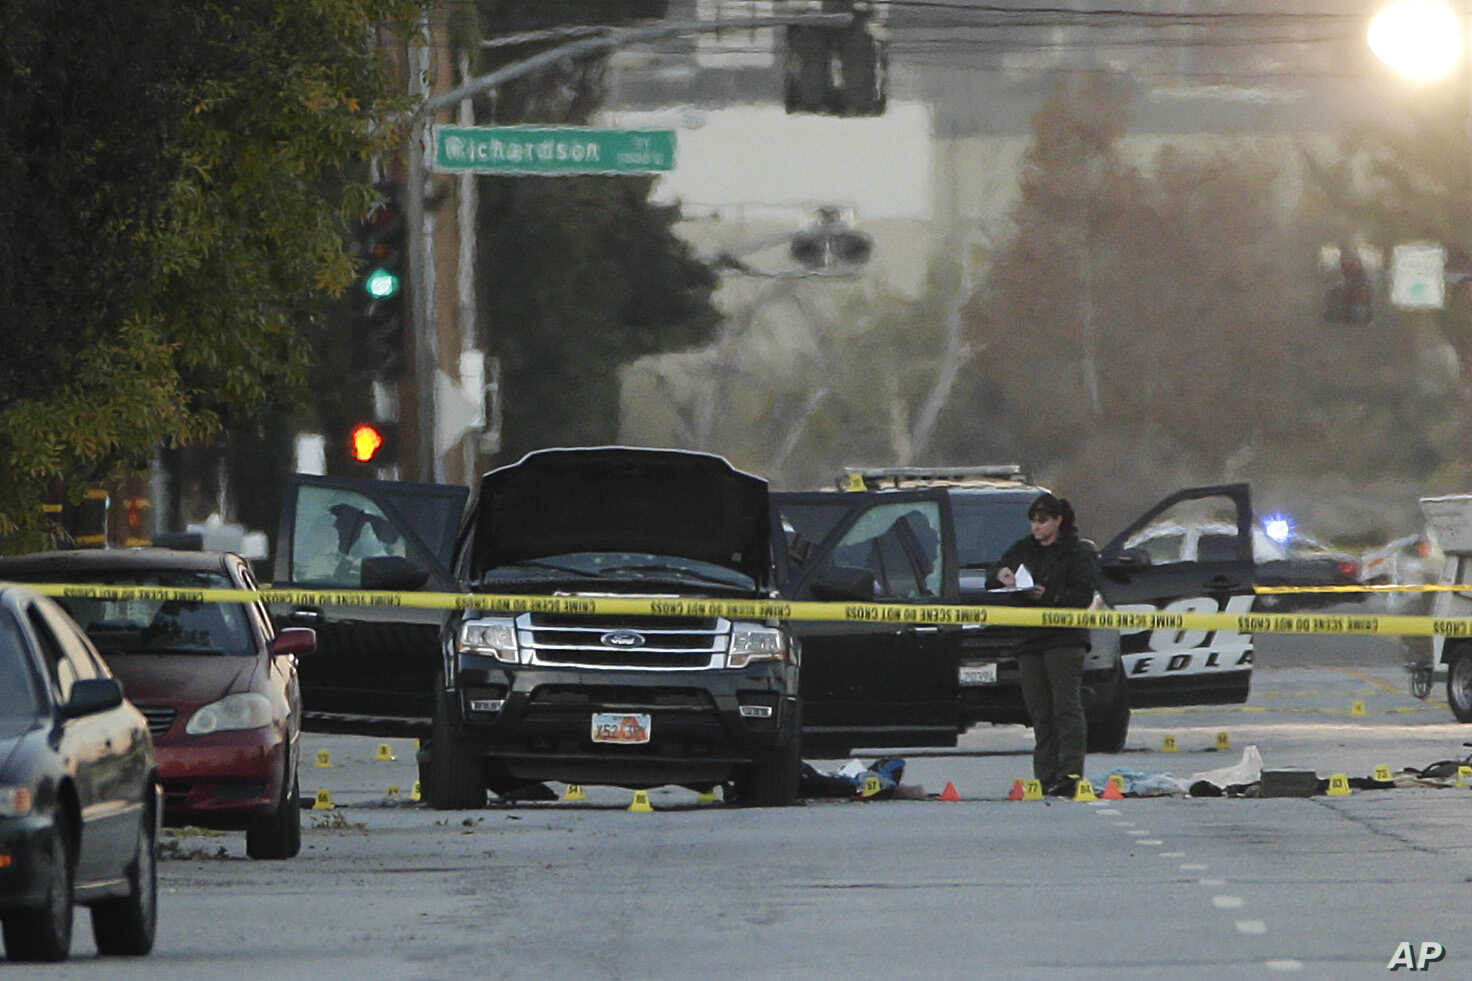 An investigator looks at a Black SUV that was involved in a police shootout with suspects, Dec. 3, 2015, in San Bernardino, Calif.